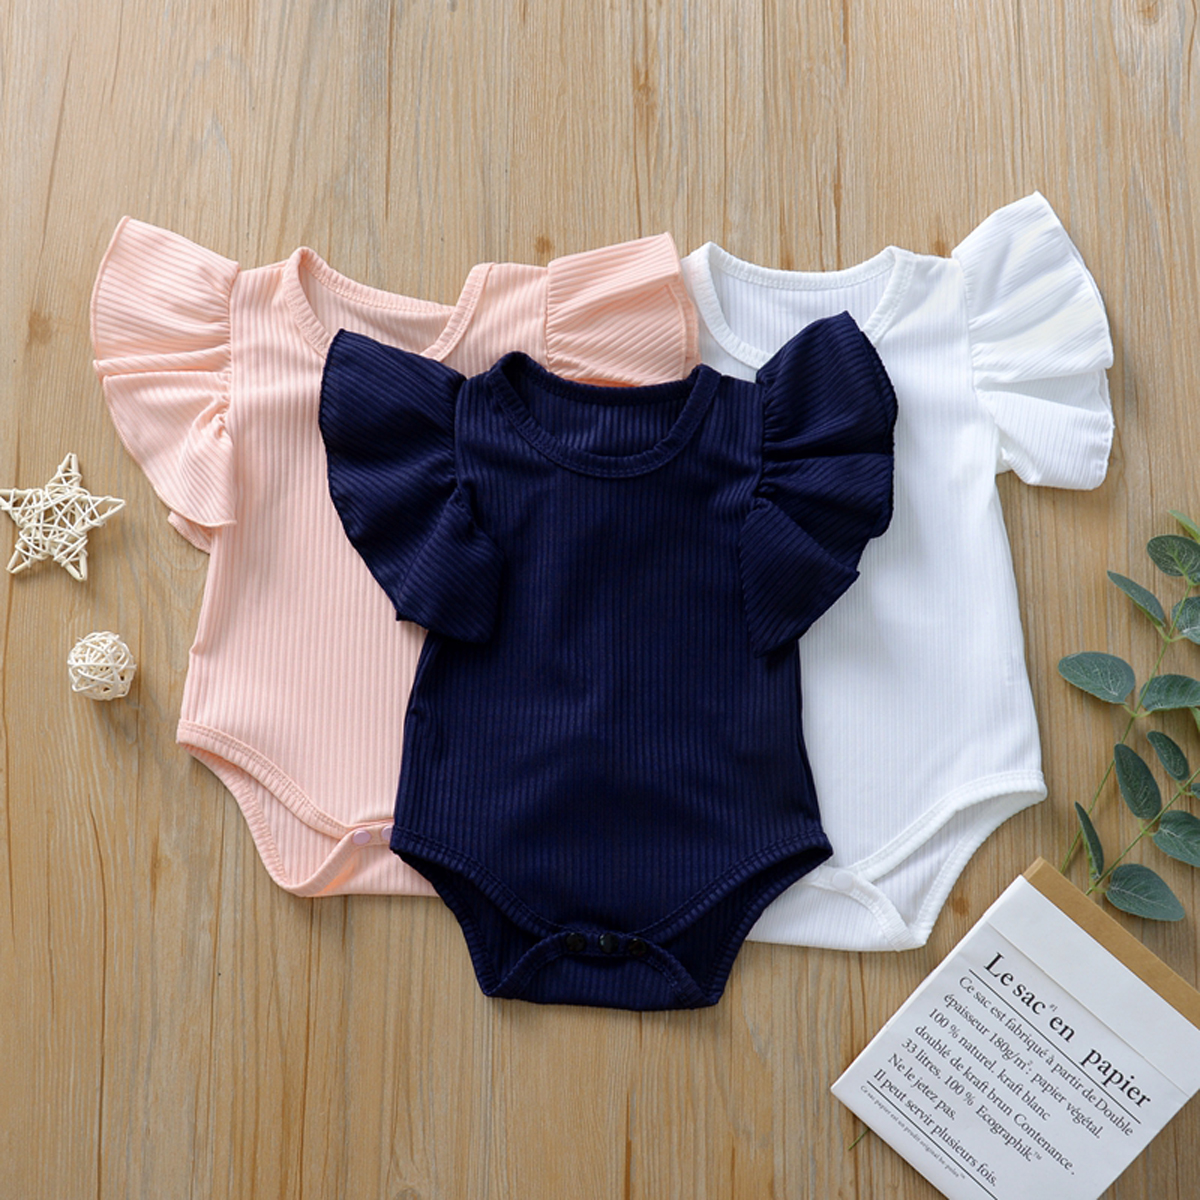 Newborn Infant Baby Girl 0-18M Cotton Romper Jumpsuit Short Sleeve Summer Clothes Outift Clothing